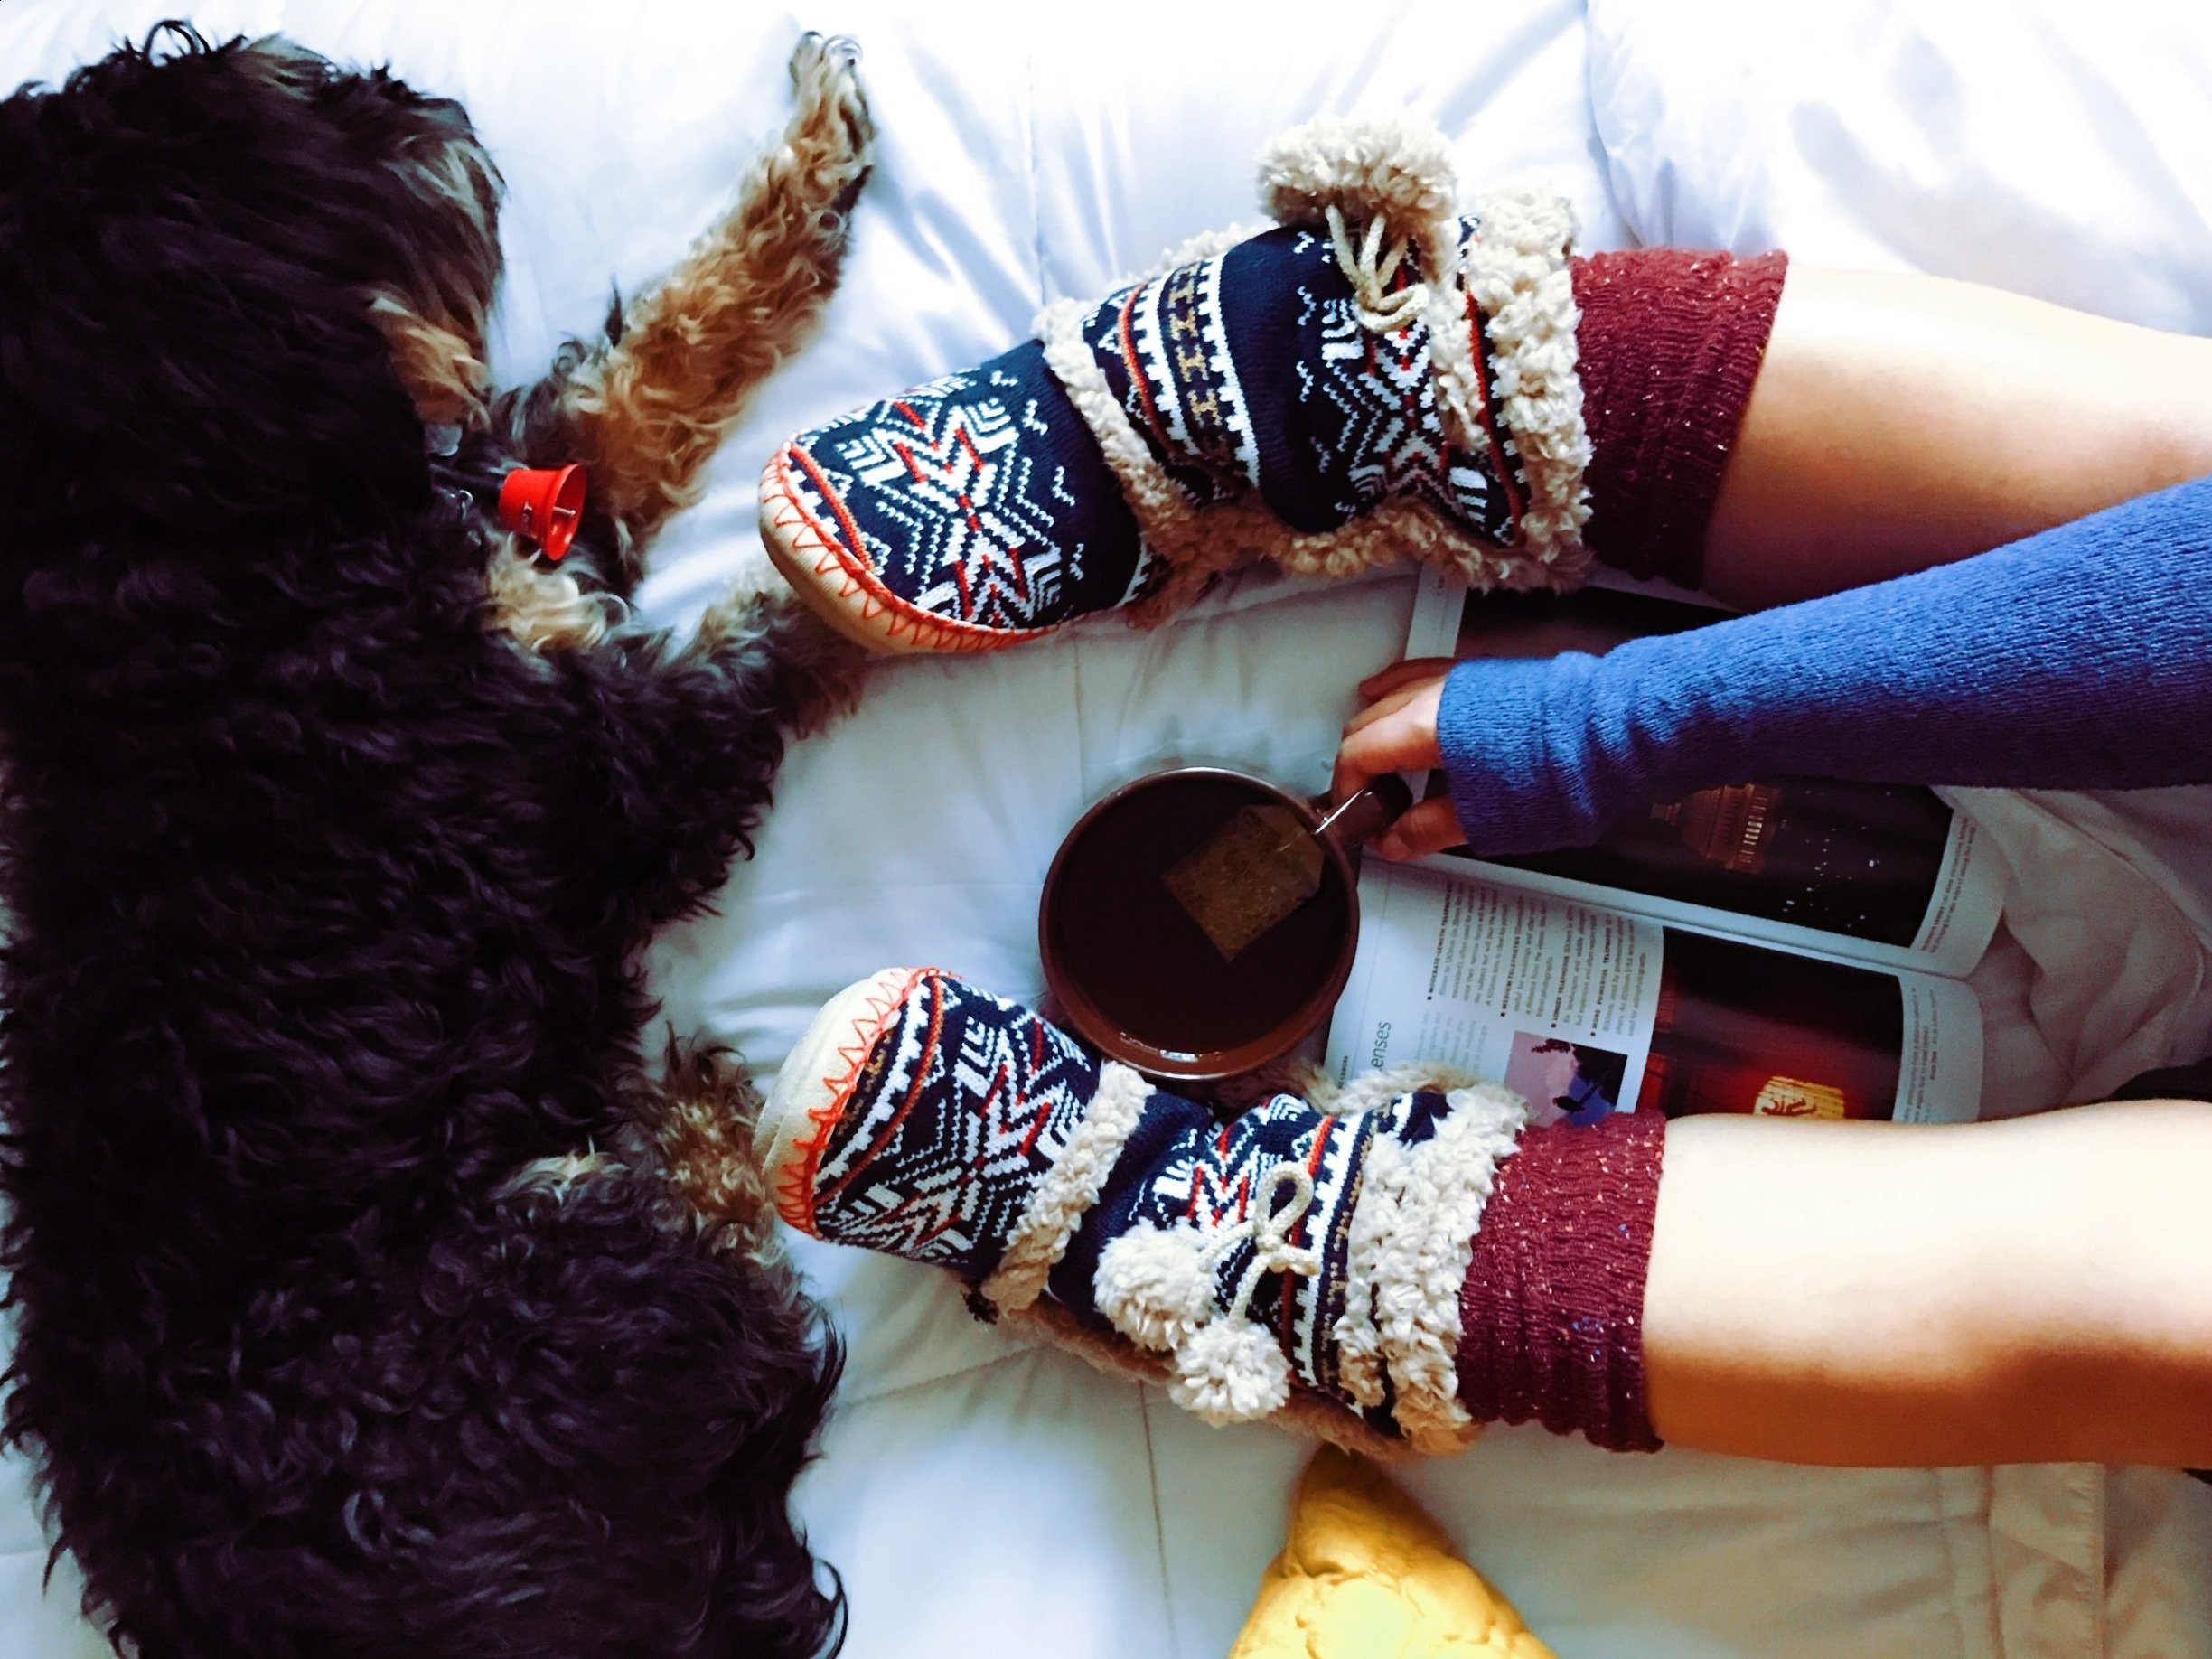 Dog and woman wearing boots in Fall